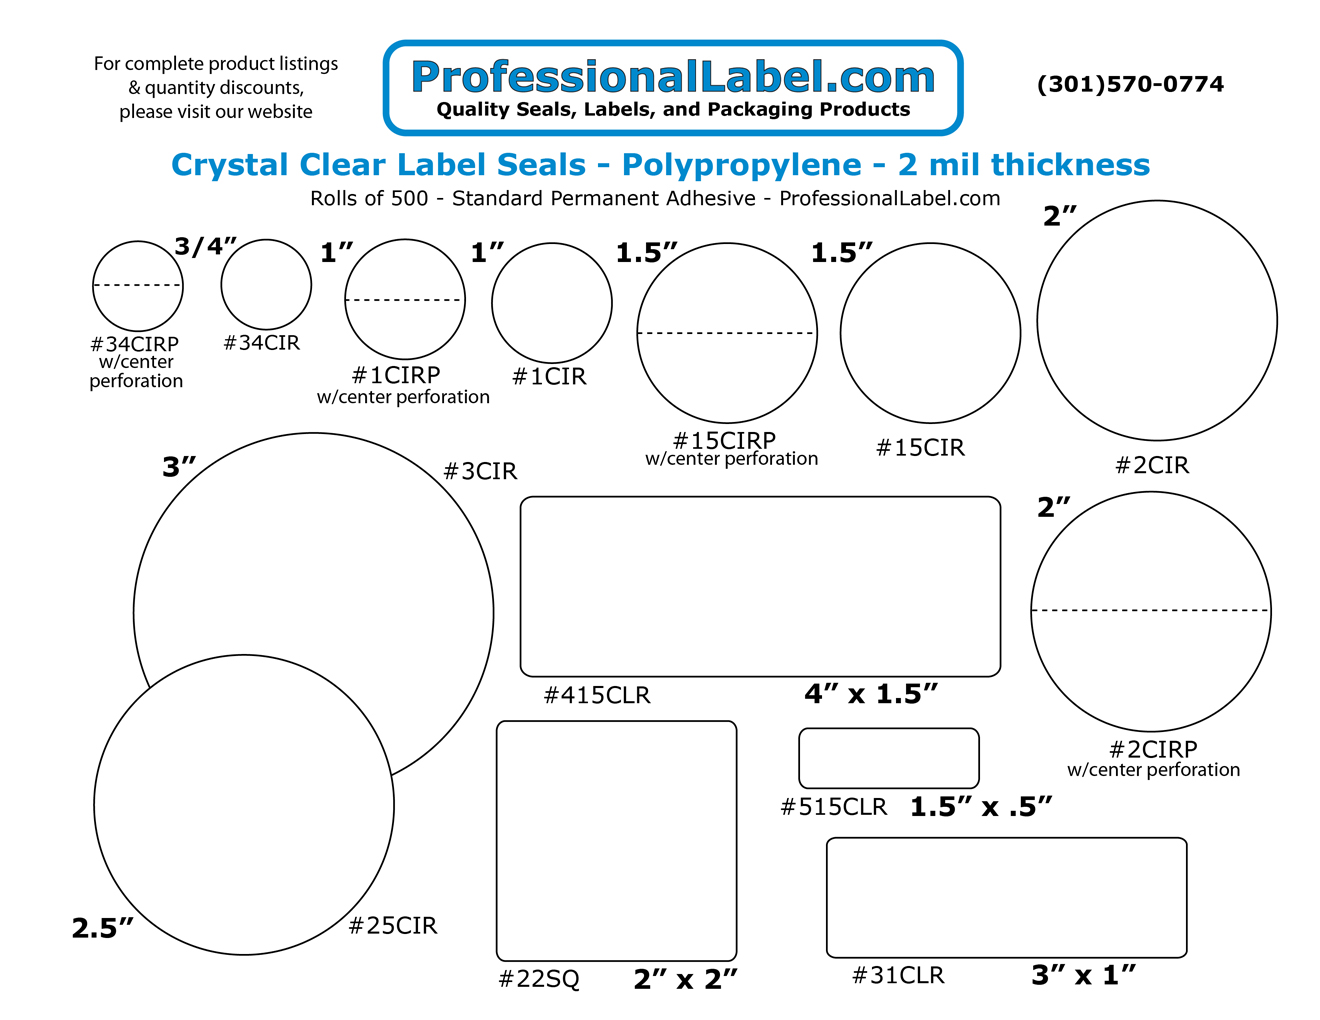 Click here for a chart of our standard permanent adhesive label sticker seals